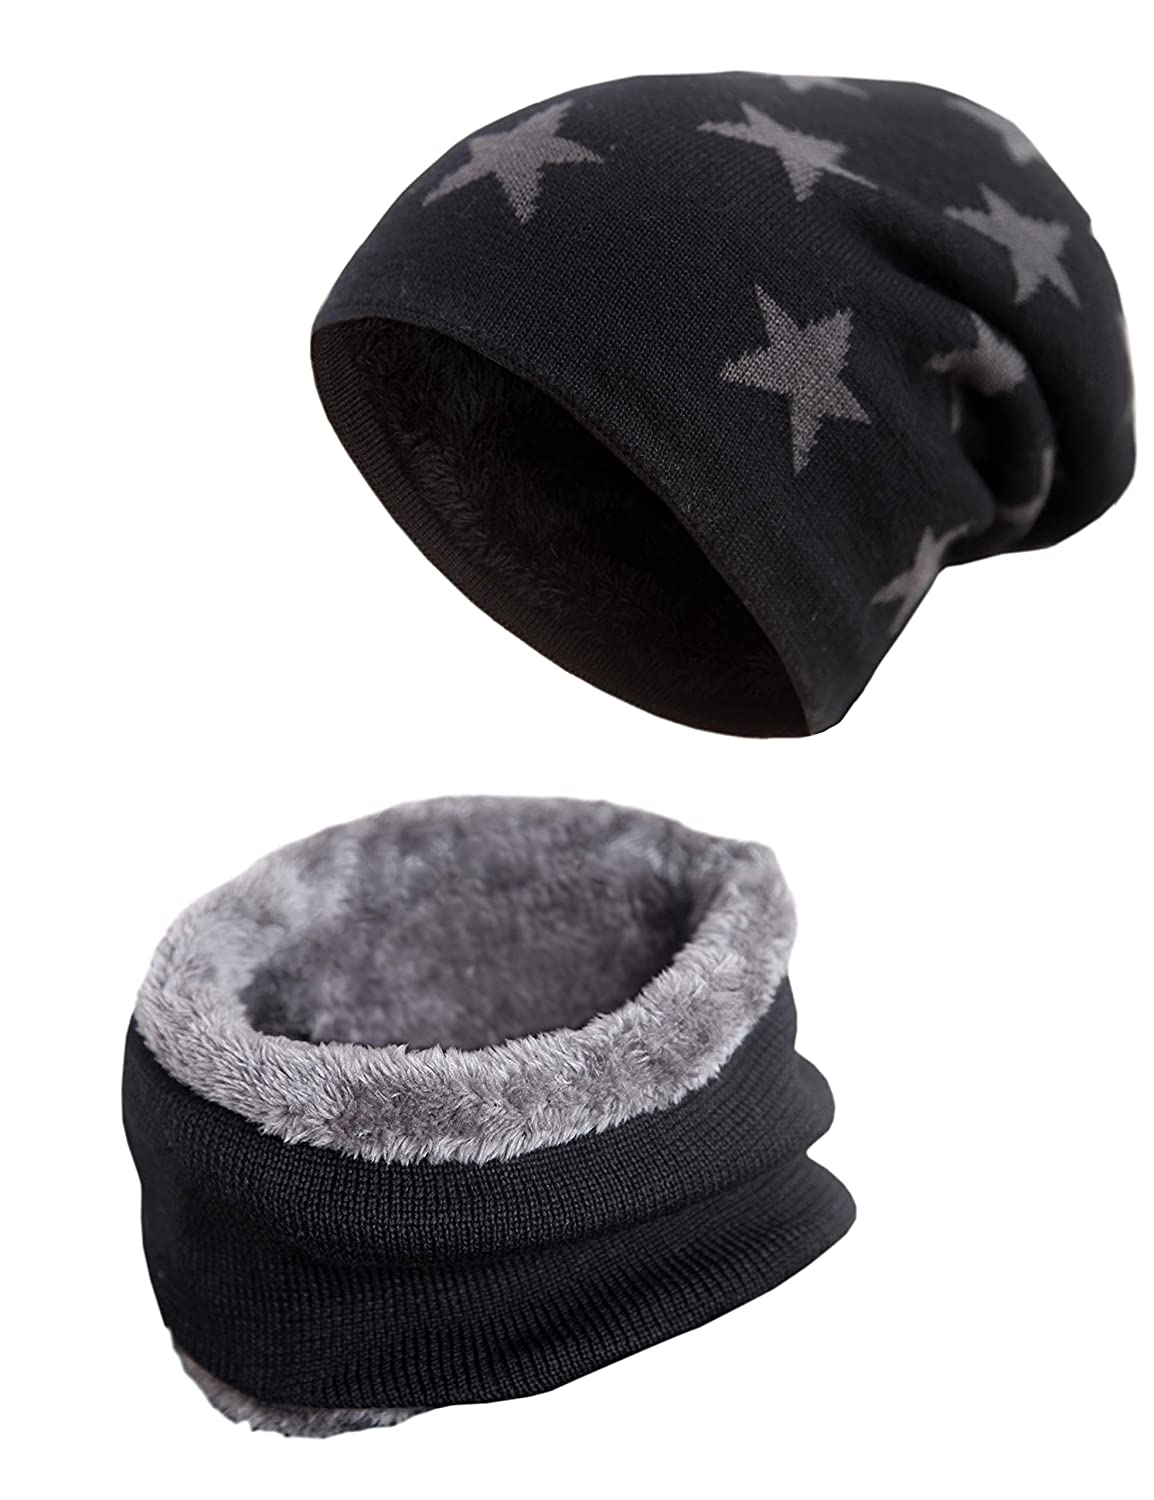 Mens Beanie Hat Scarf Set Warm Knit Skull Cap for Winter by MissShorthair F186C-1m